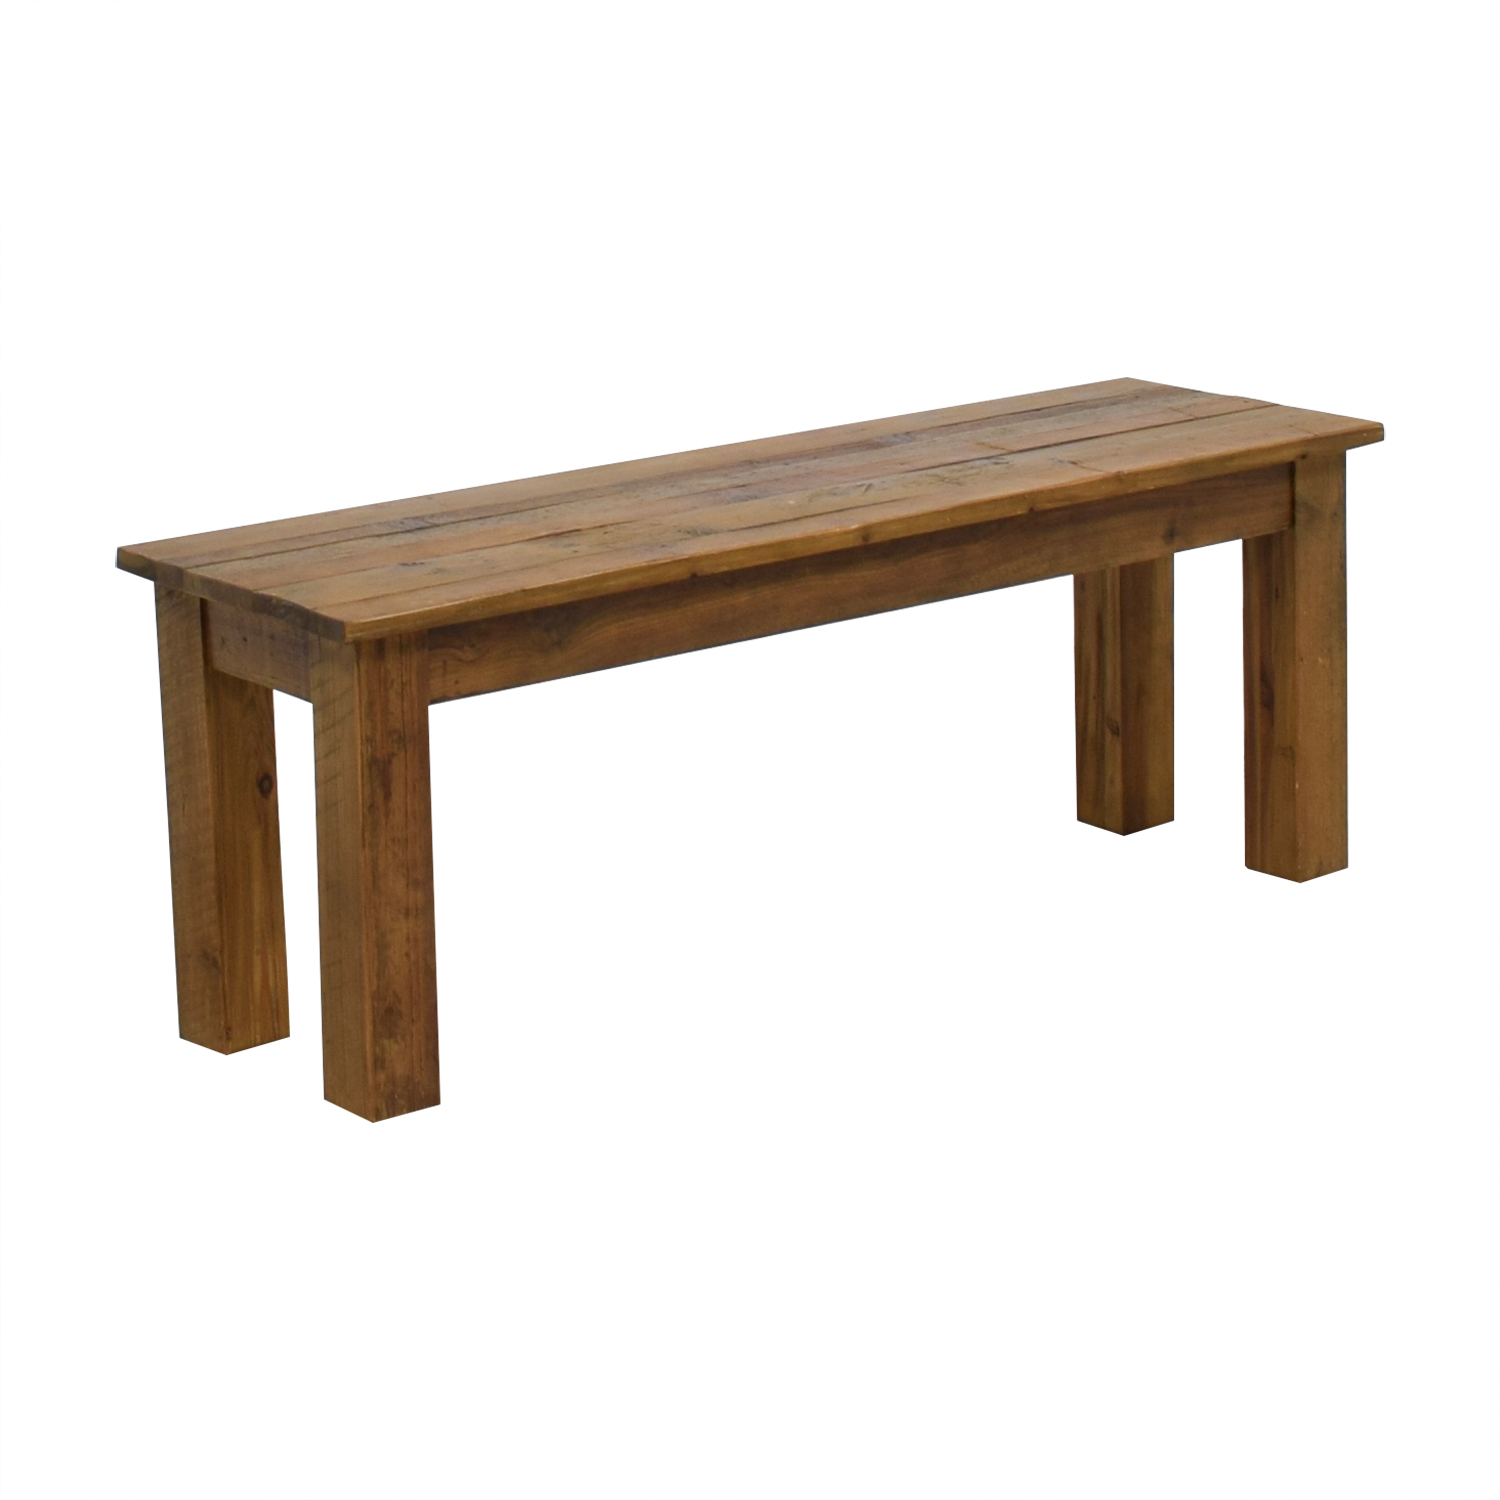 West Elm West Elm Reclaimed Wood Bench Benches